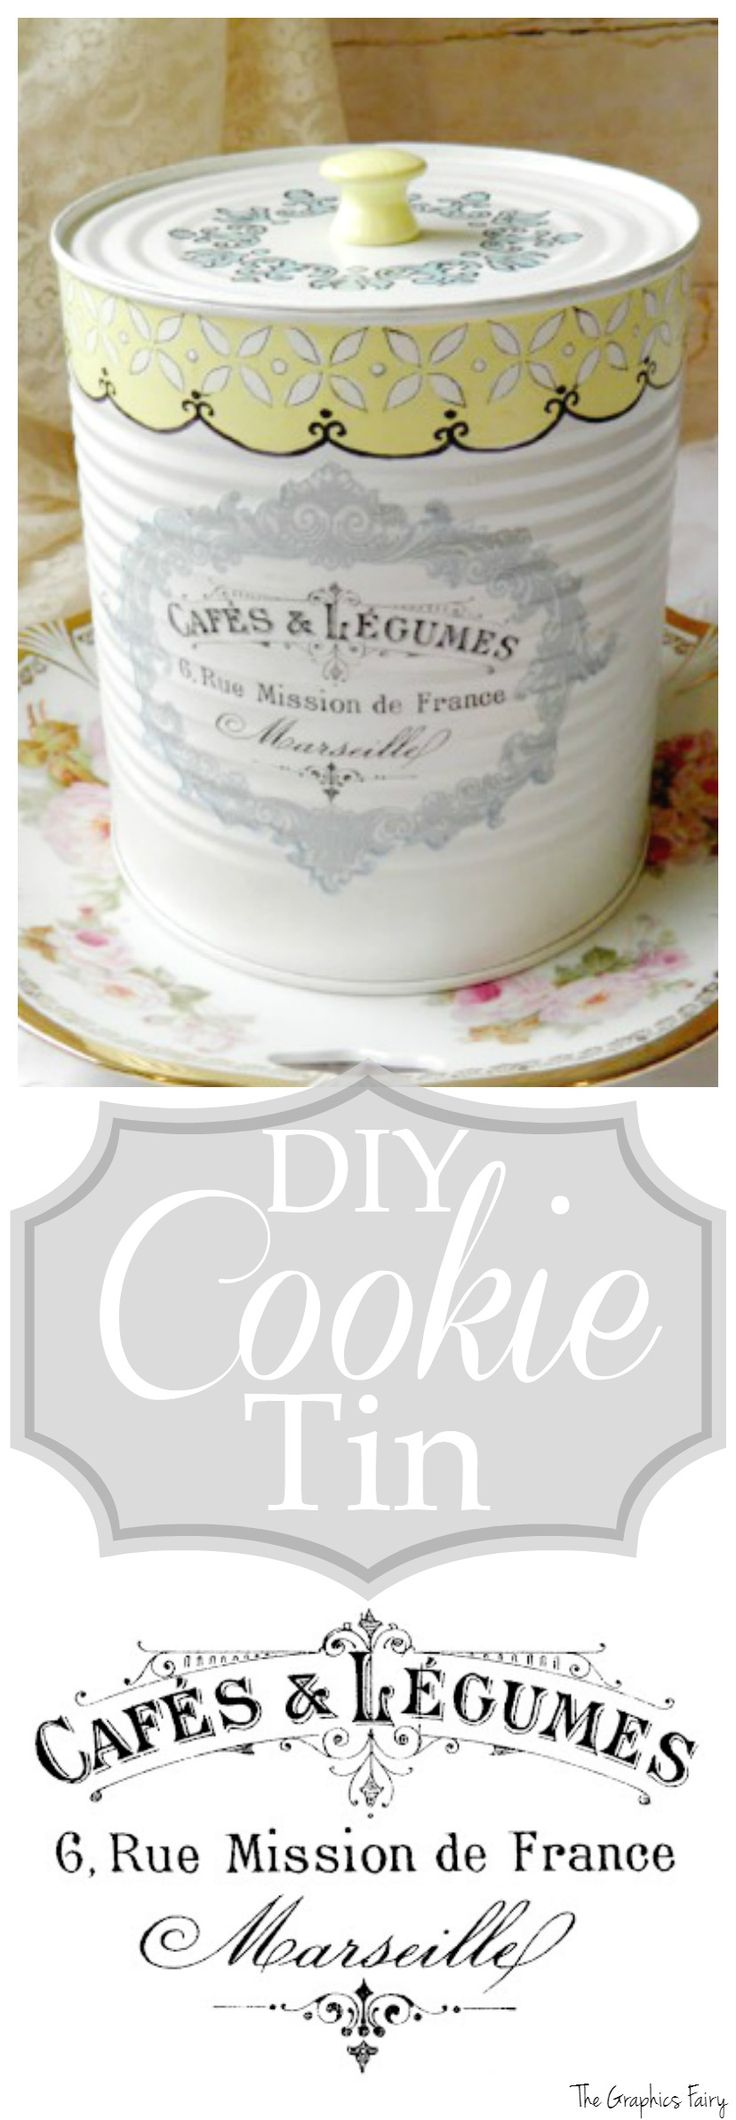 DIY Cookie Tin - The Graphics Fairy